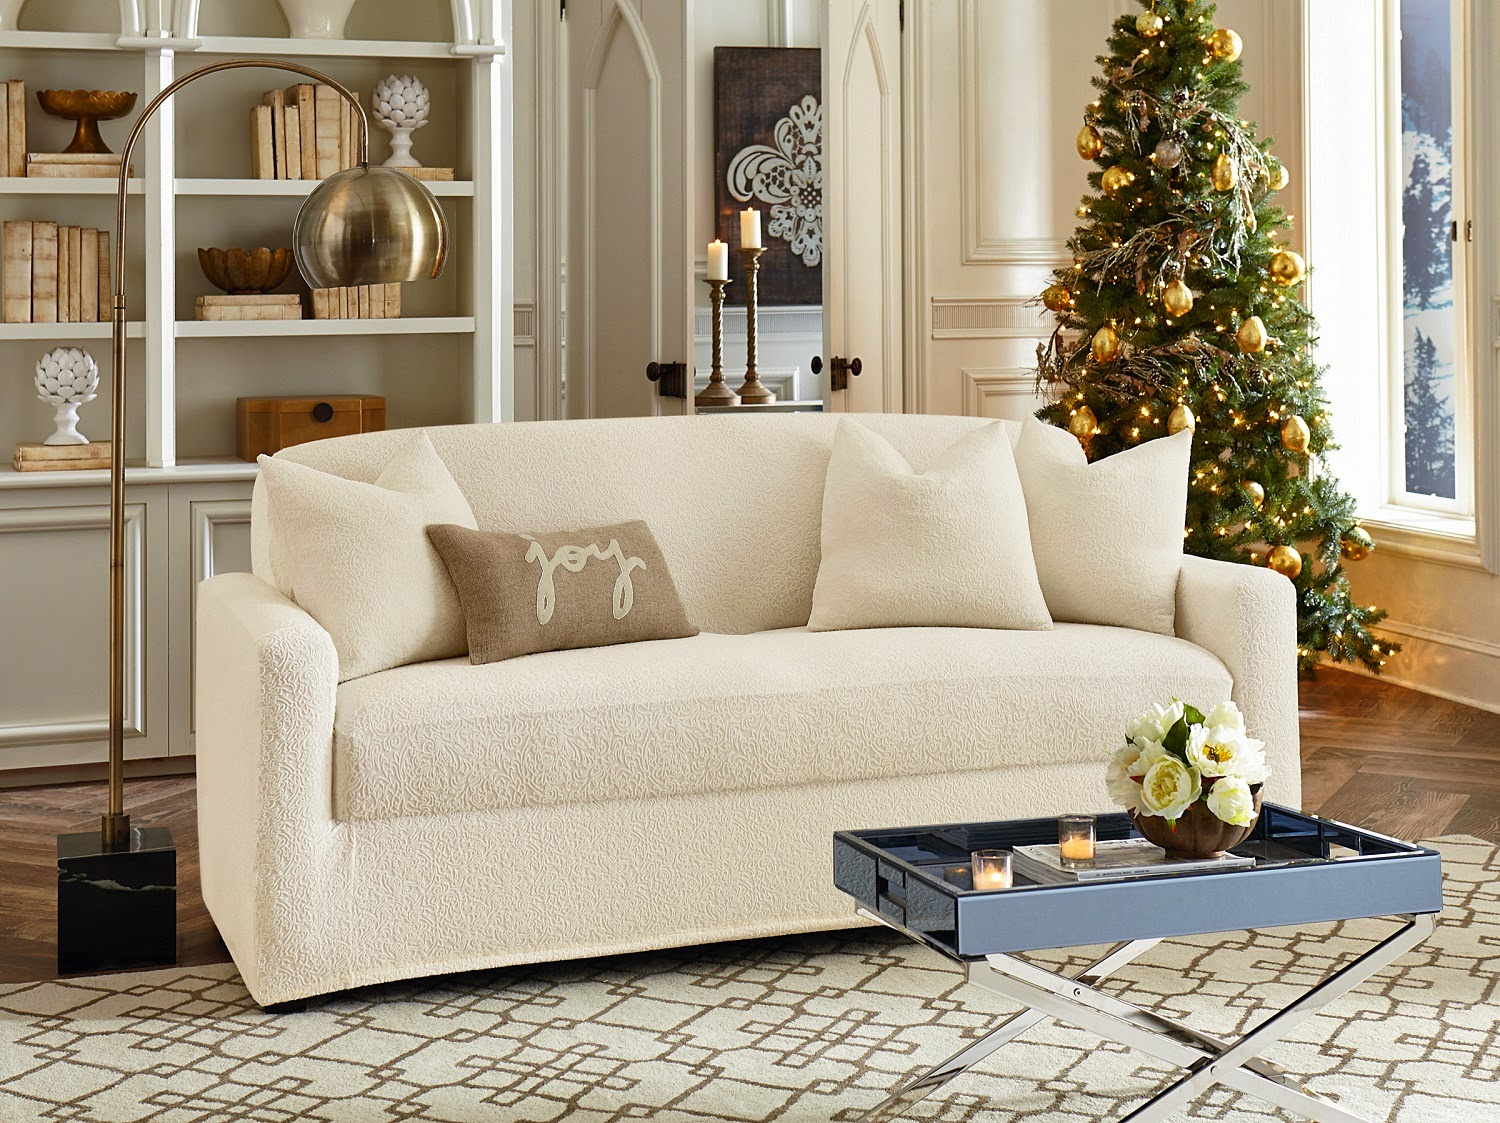 charming sofa with white surefit cover plus white rug on wooden floor for living room decor ideas